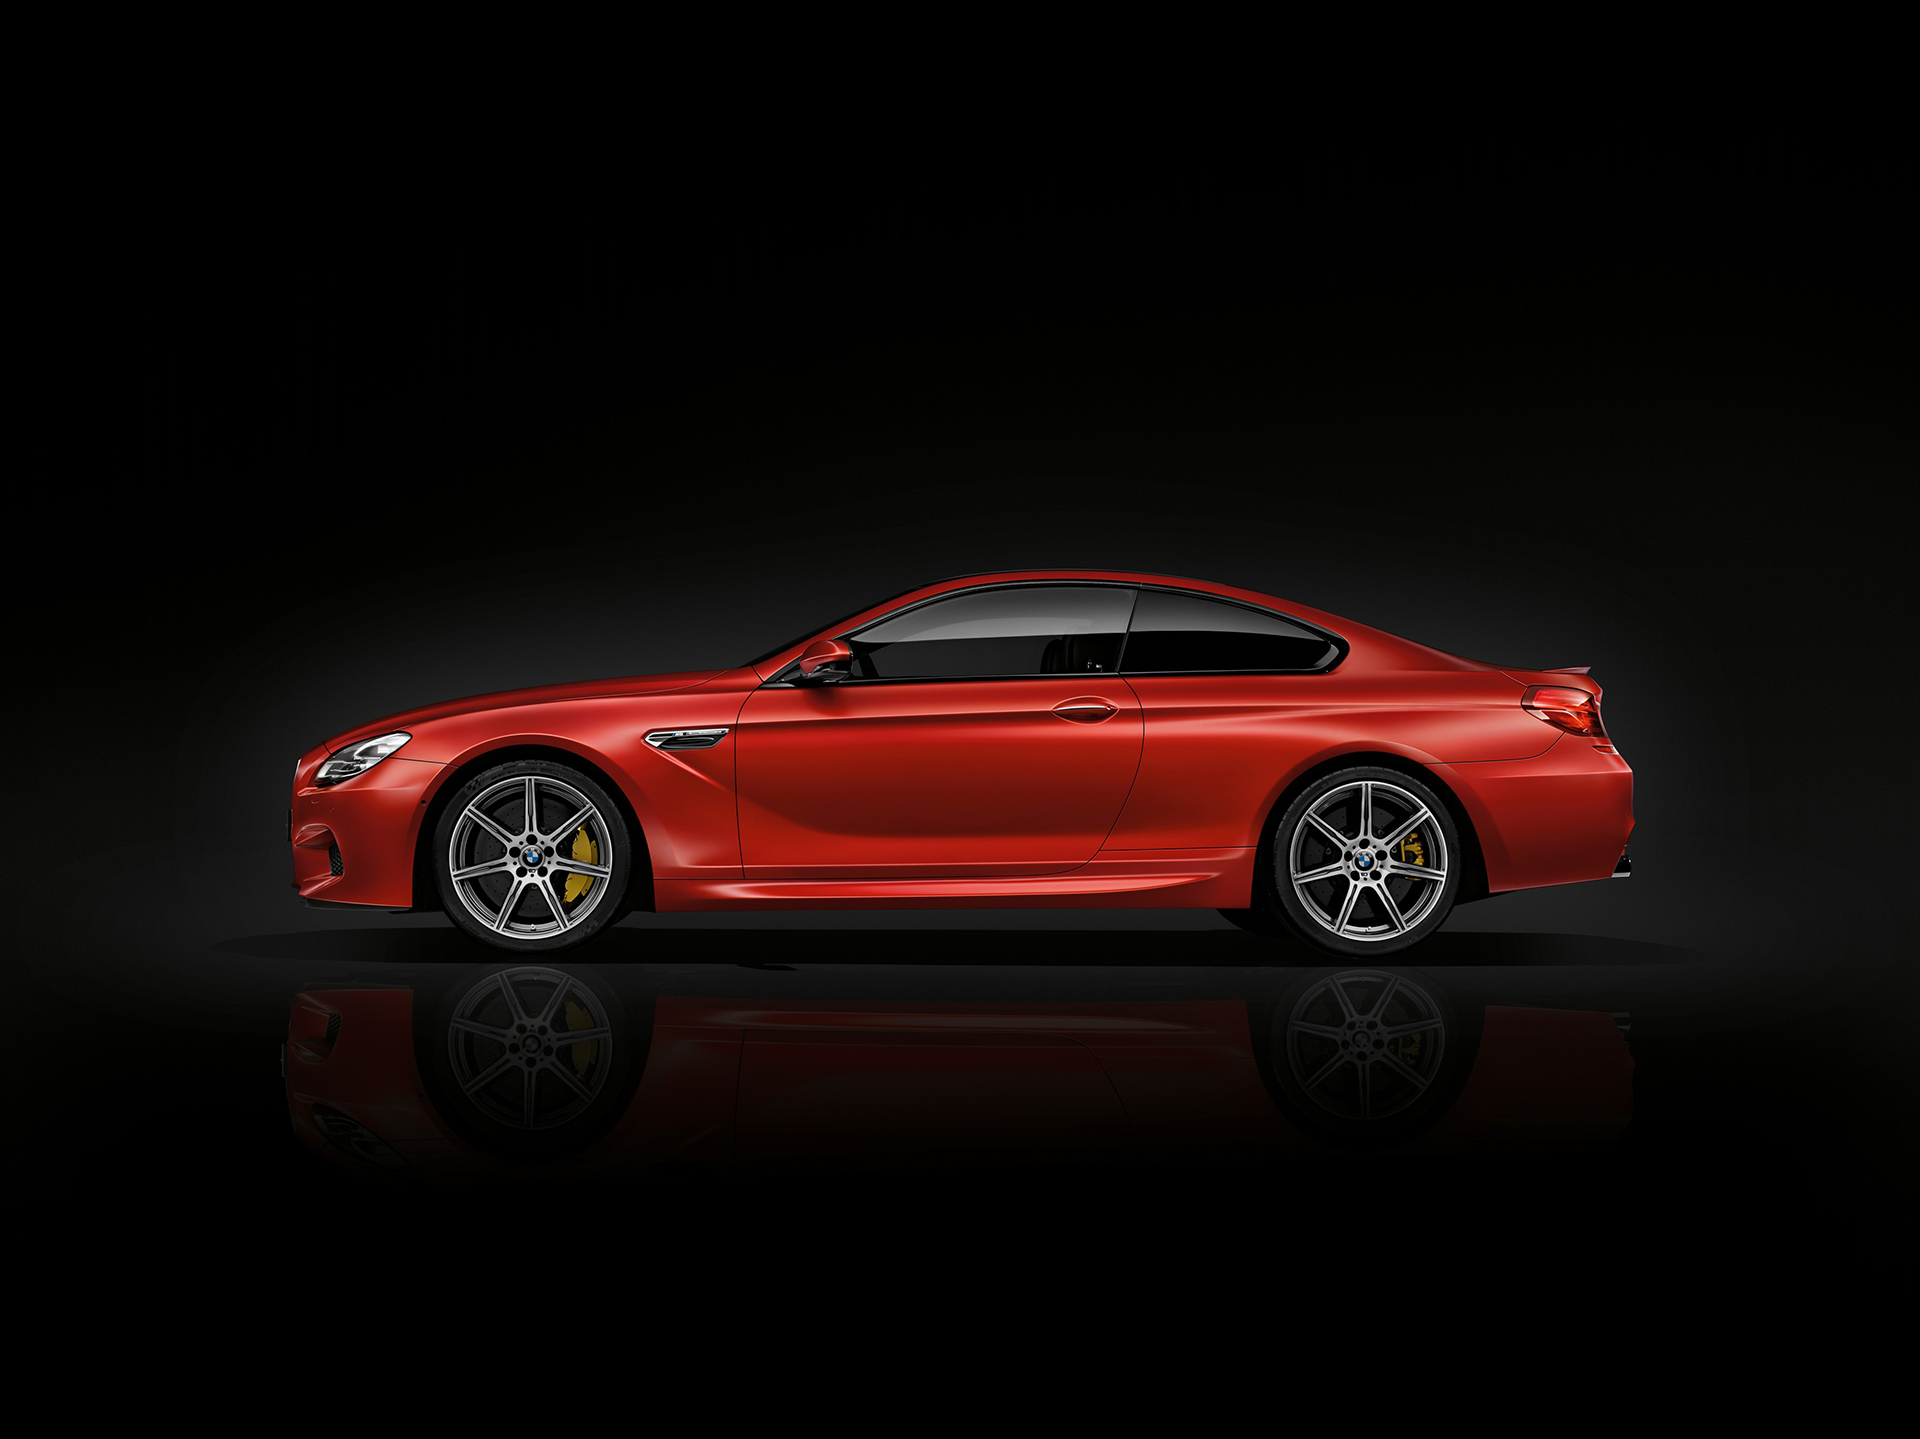 BMW M6 coupé 2015 - side-face / profil